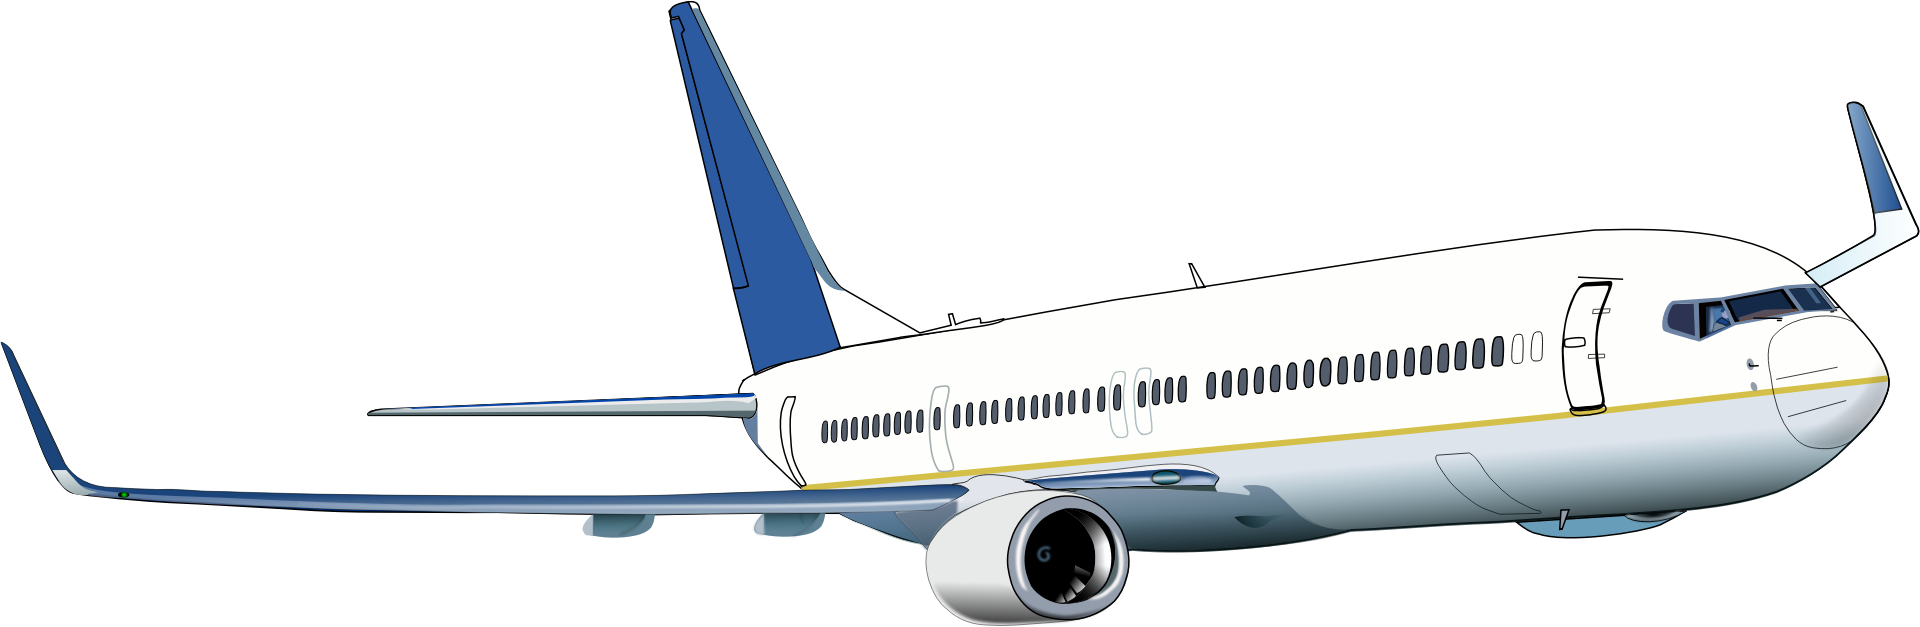 Boeing 737 clipart.